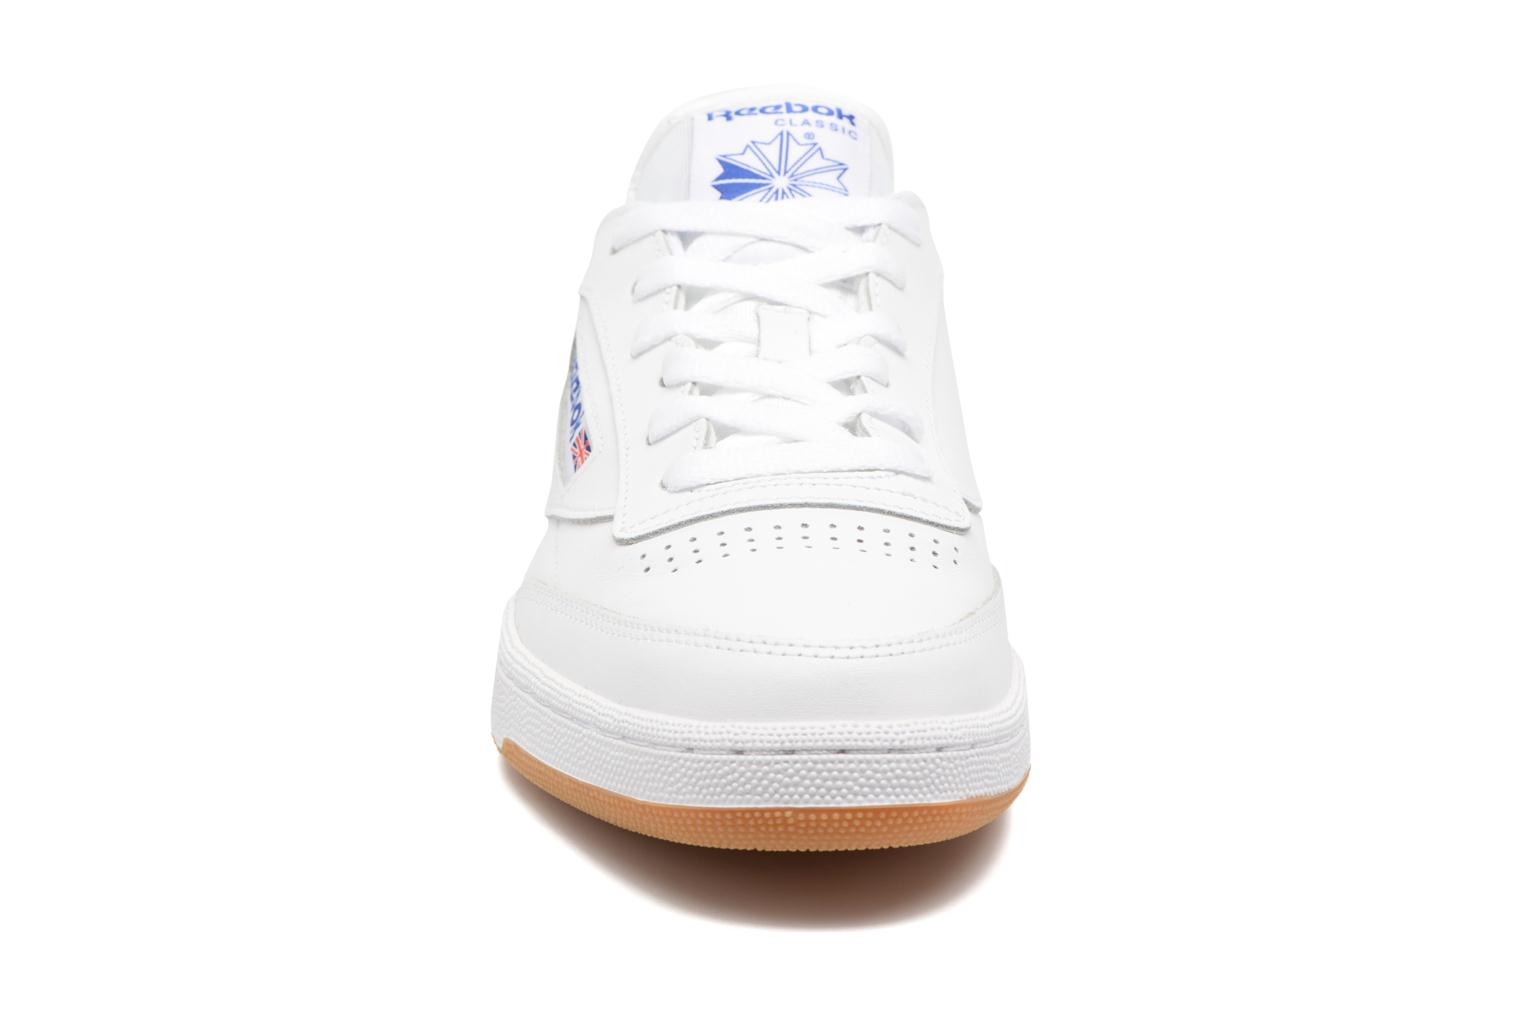 Club C 85 Int-White/Royal-Gum